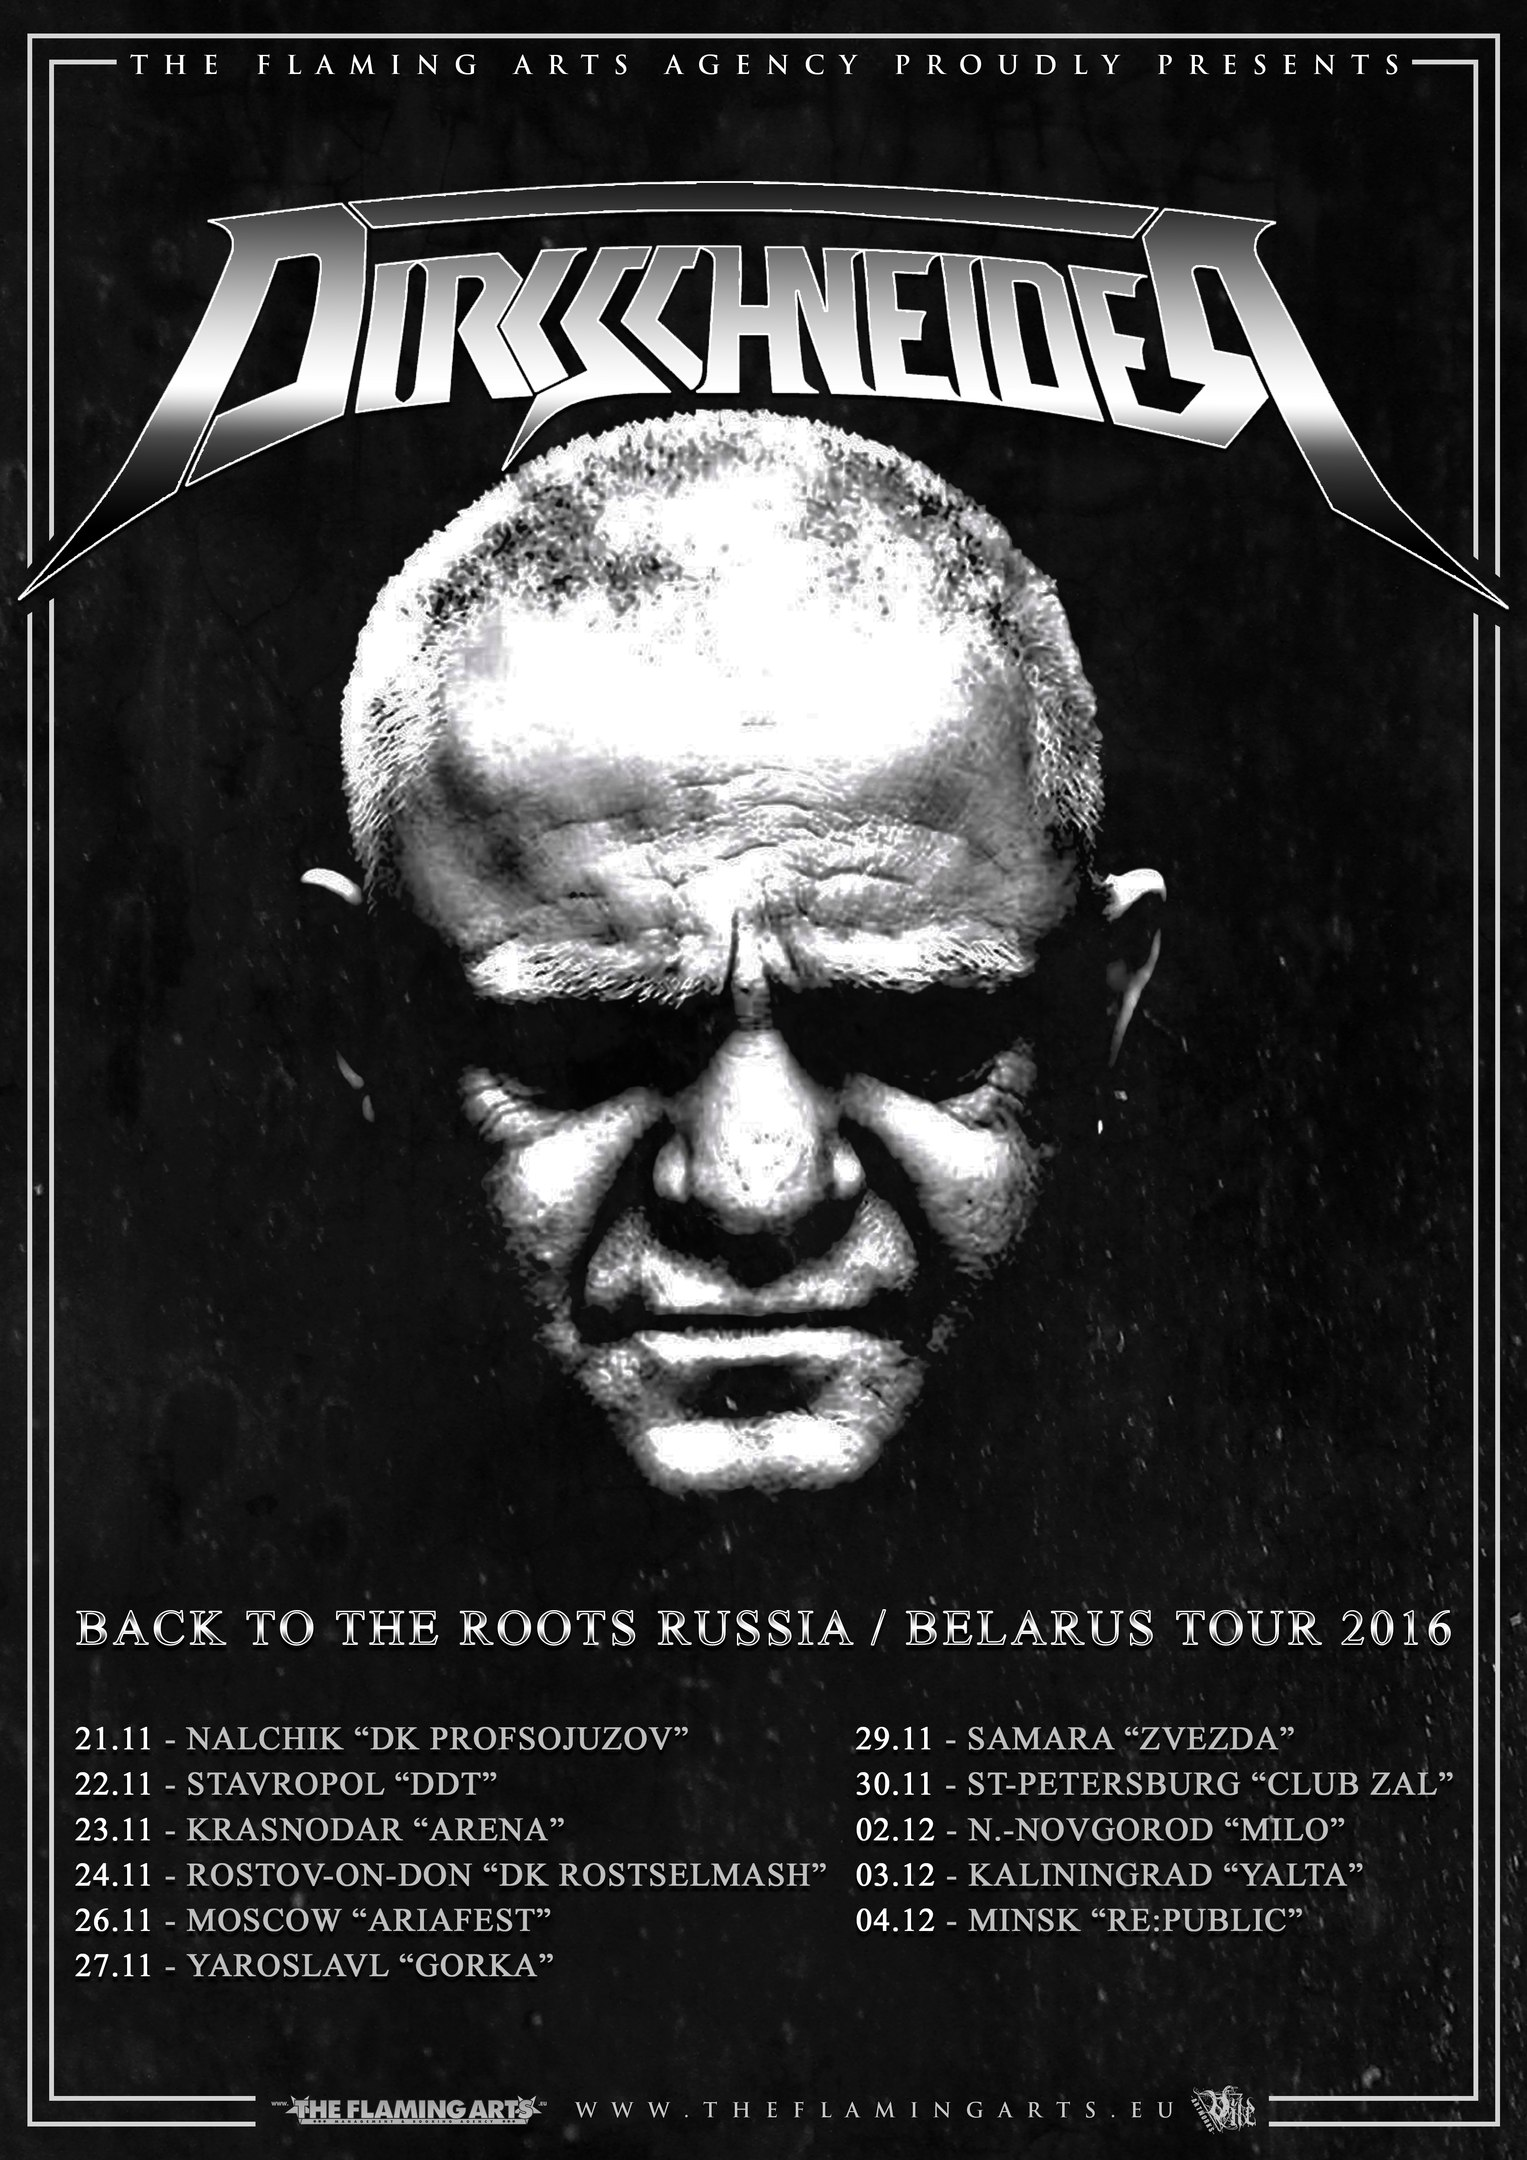 Dirkschneider Back To The Roots Russia Belarus tour 2016